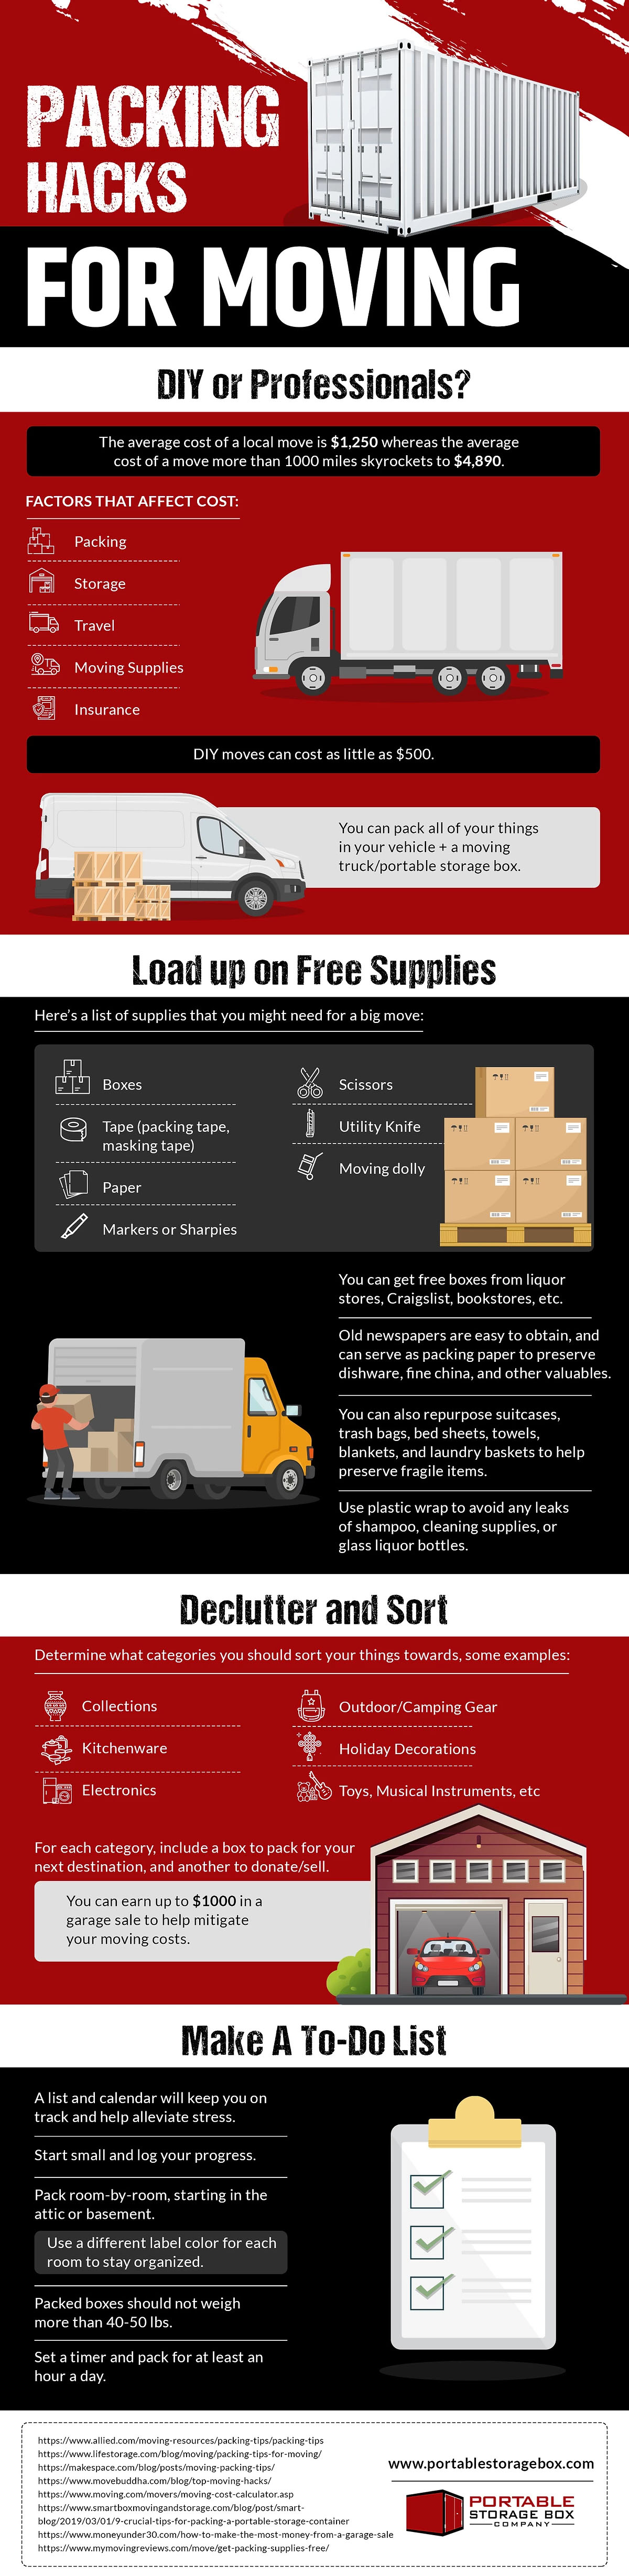 Packing Hacks for Moving